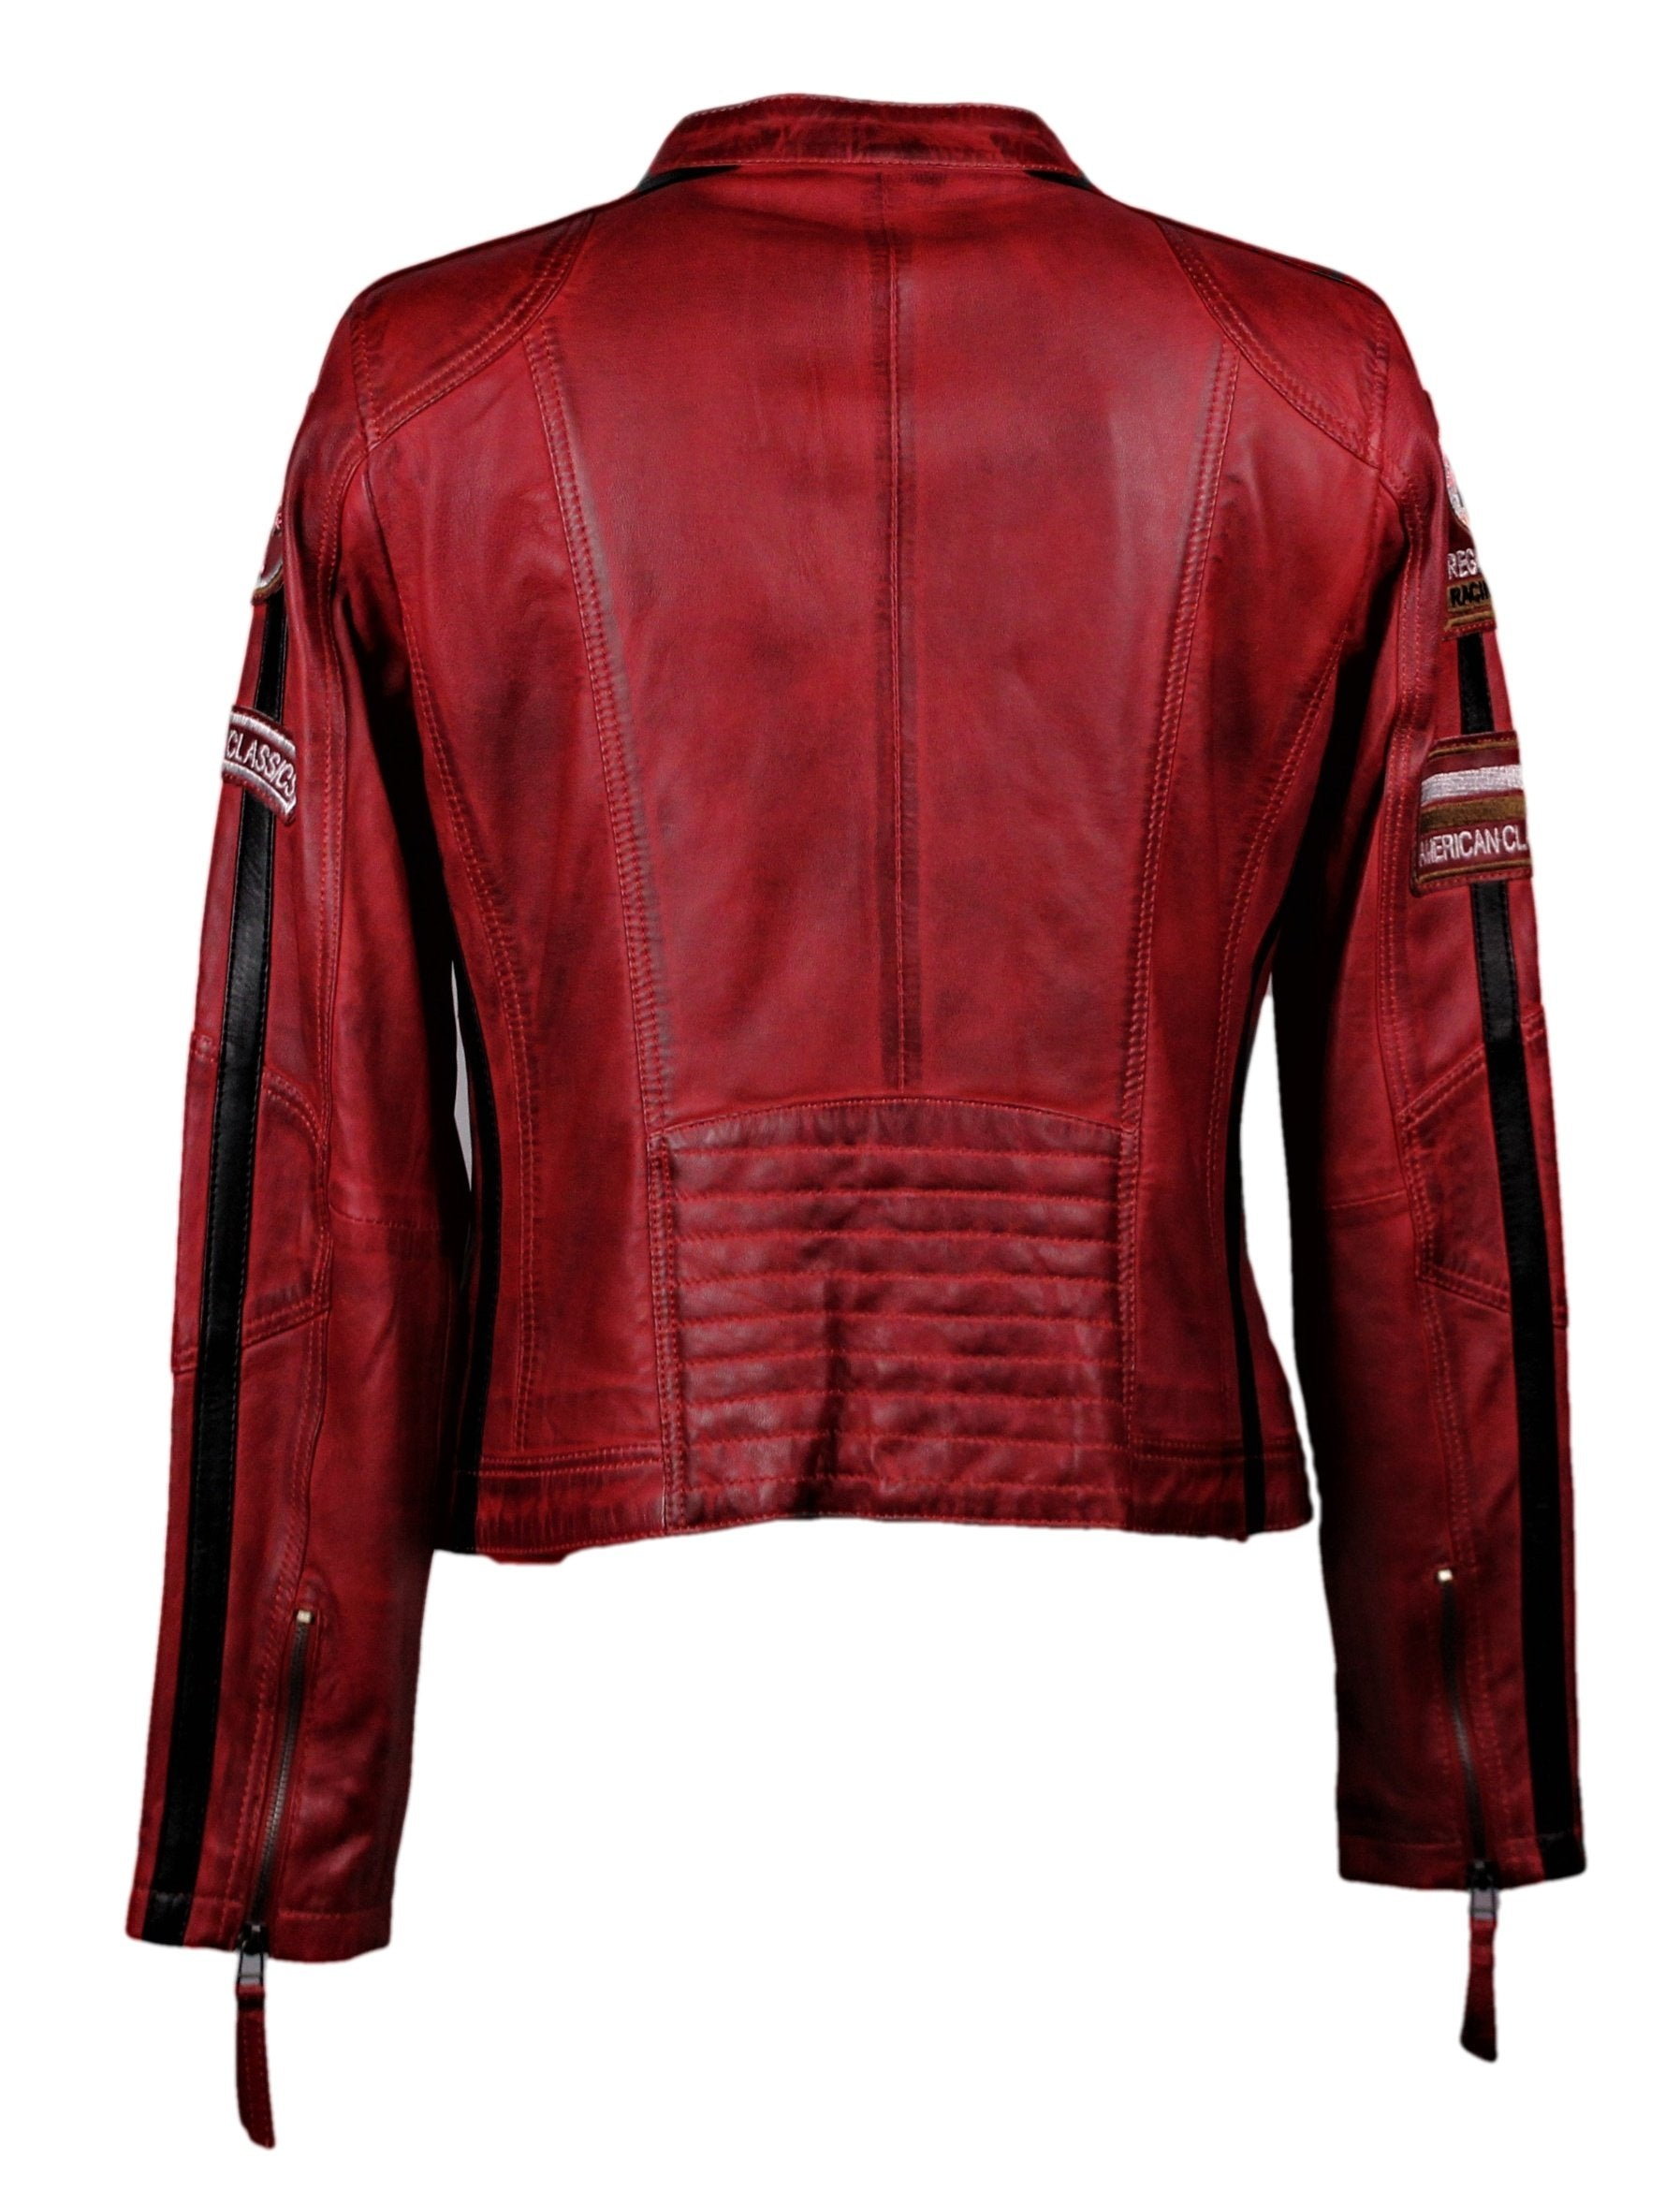 Women's Moto GP Racing Red Jacket - One Left